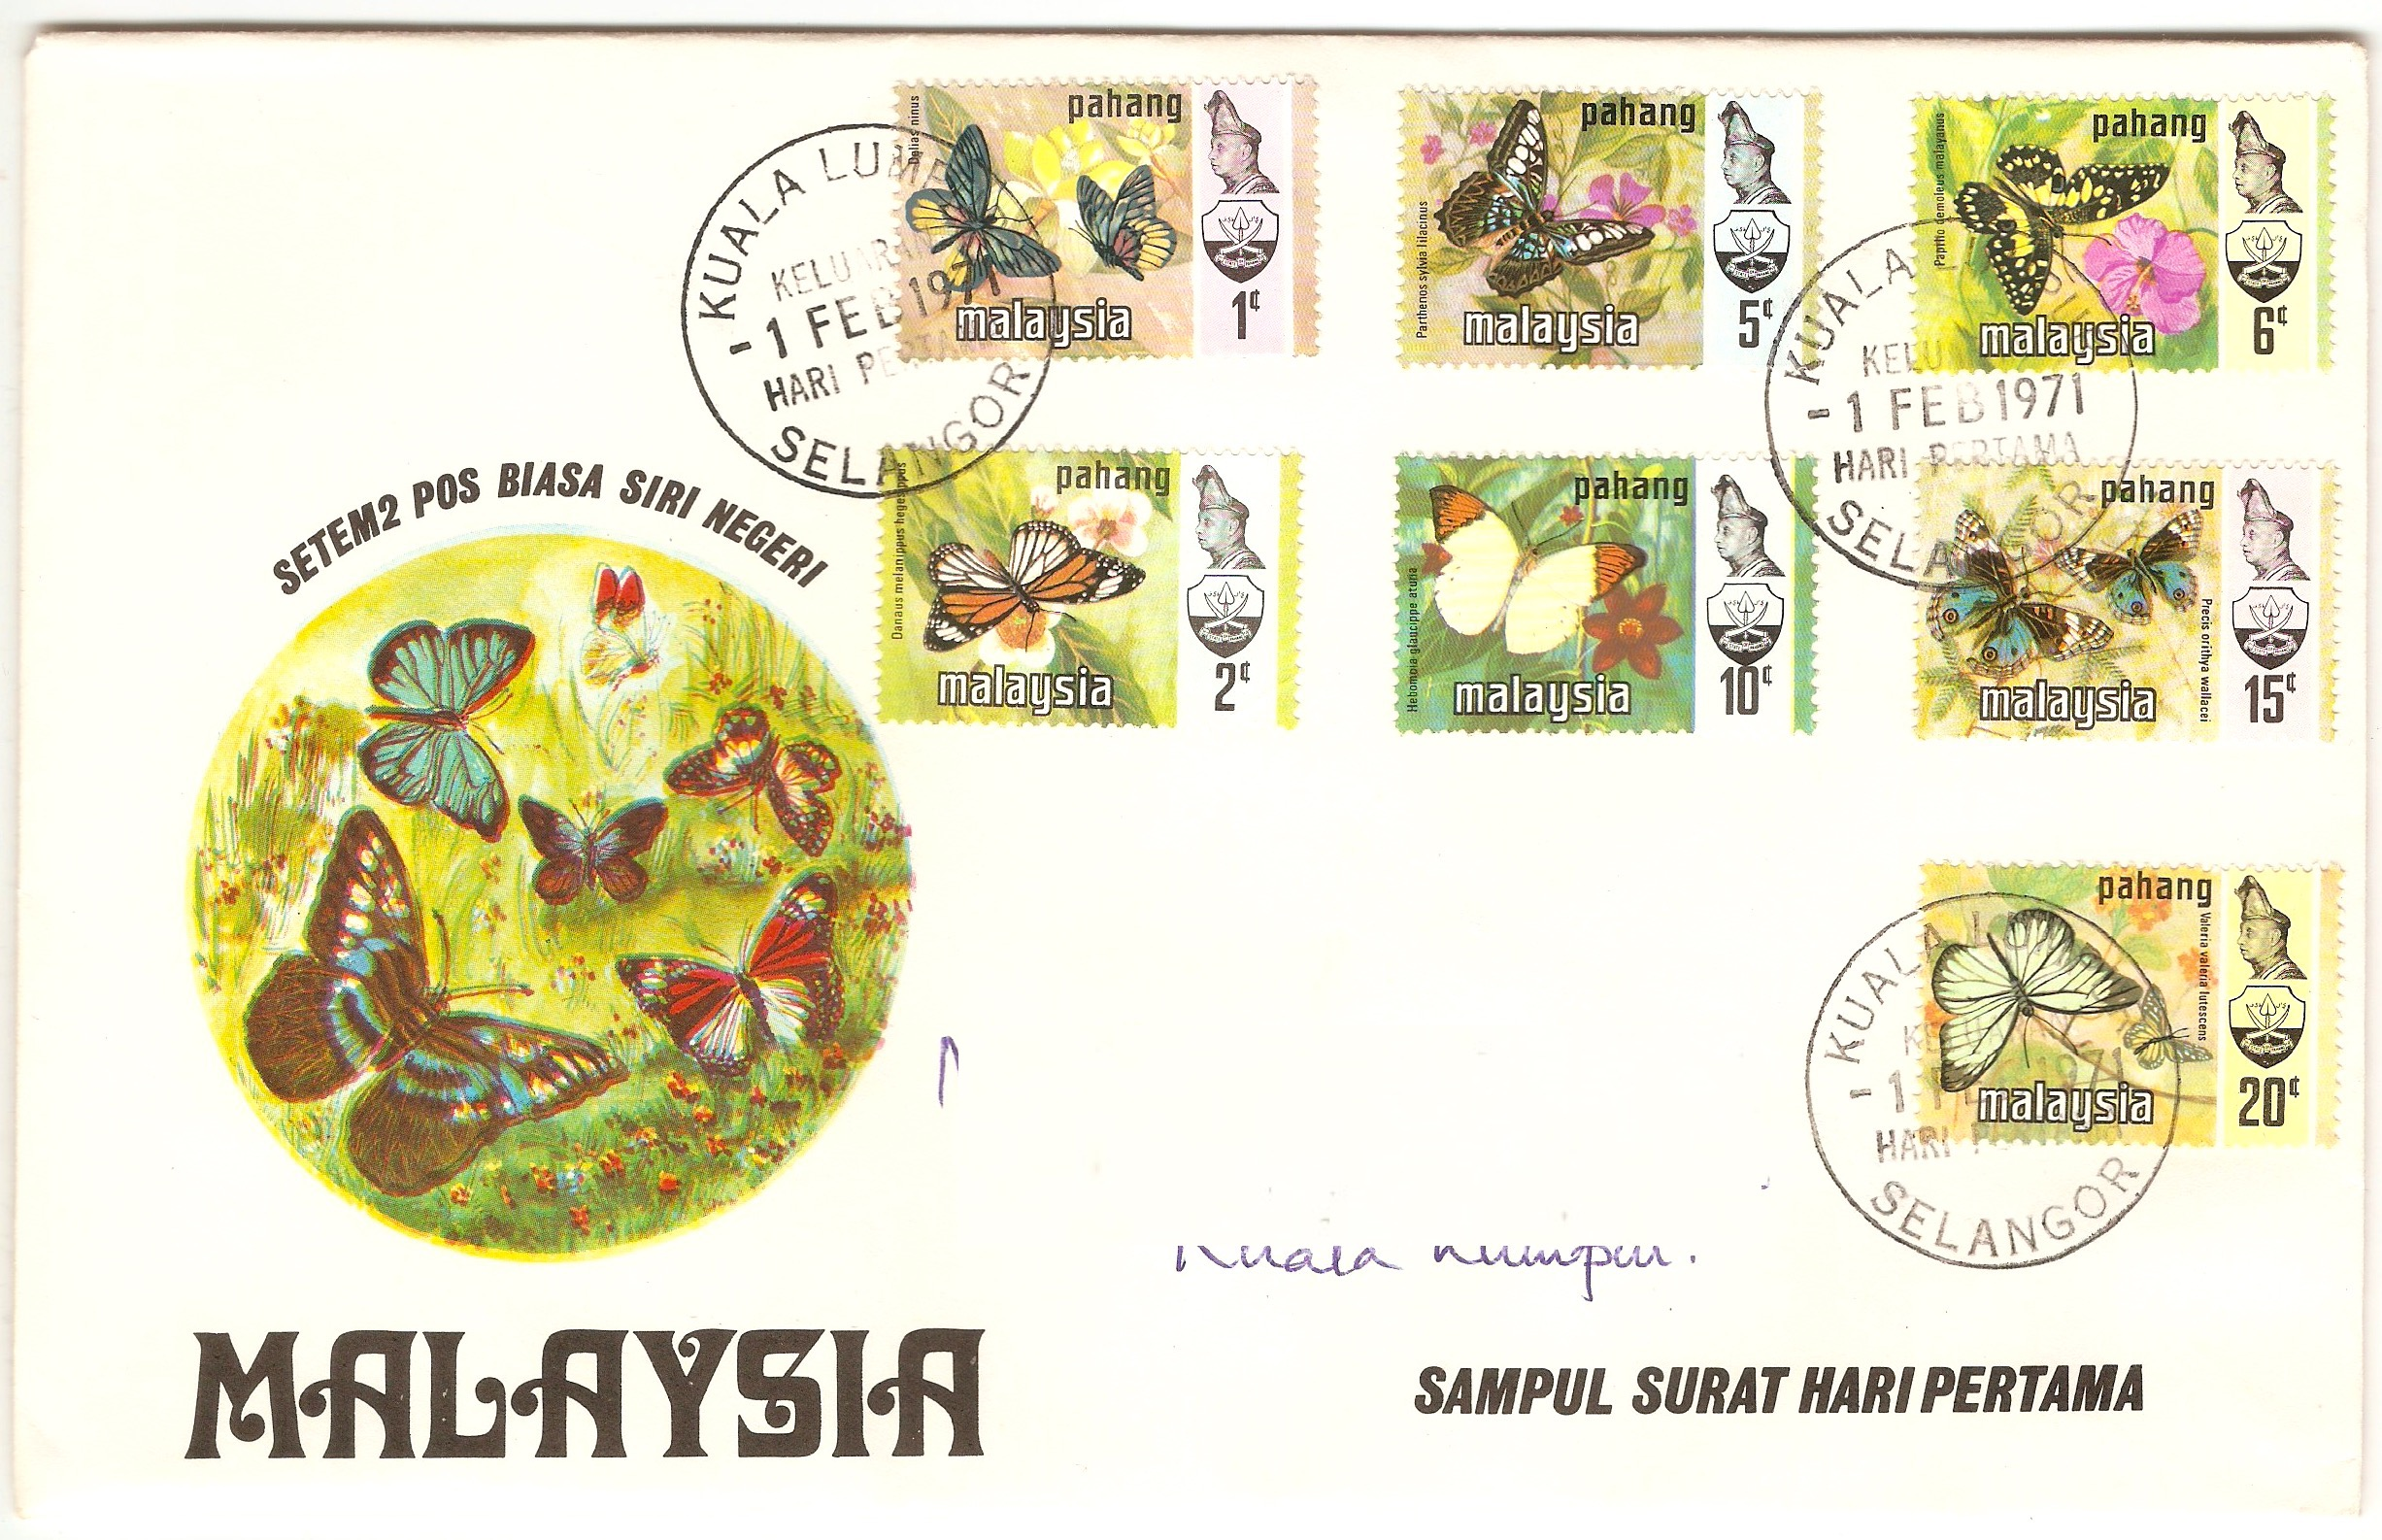 Pahang 1971 Butterflies set - FDC. Stamp nos. SG96-SG102.